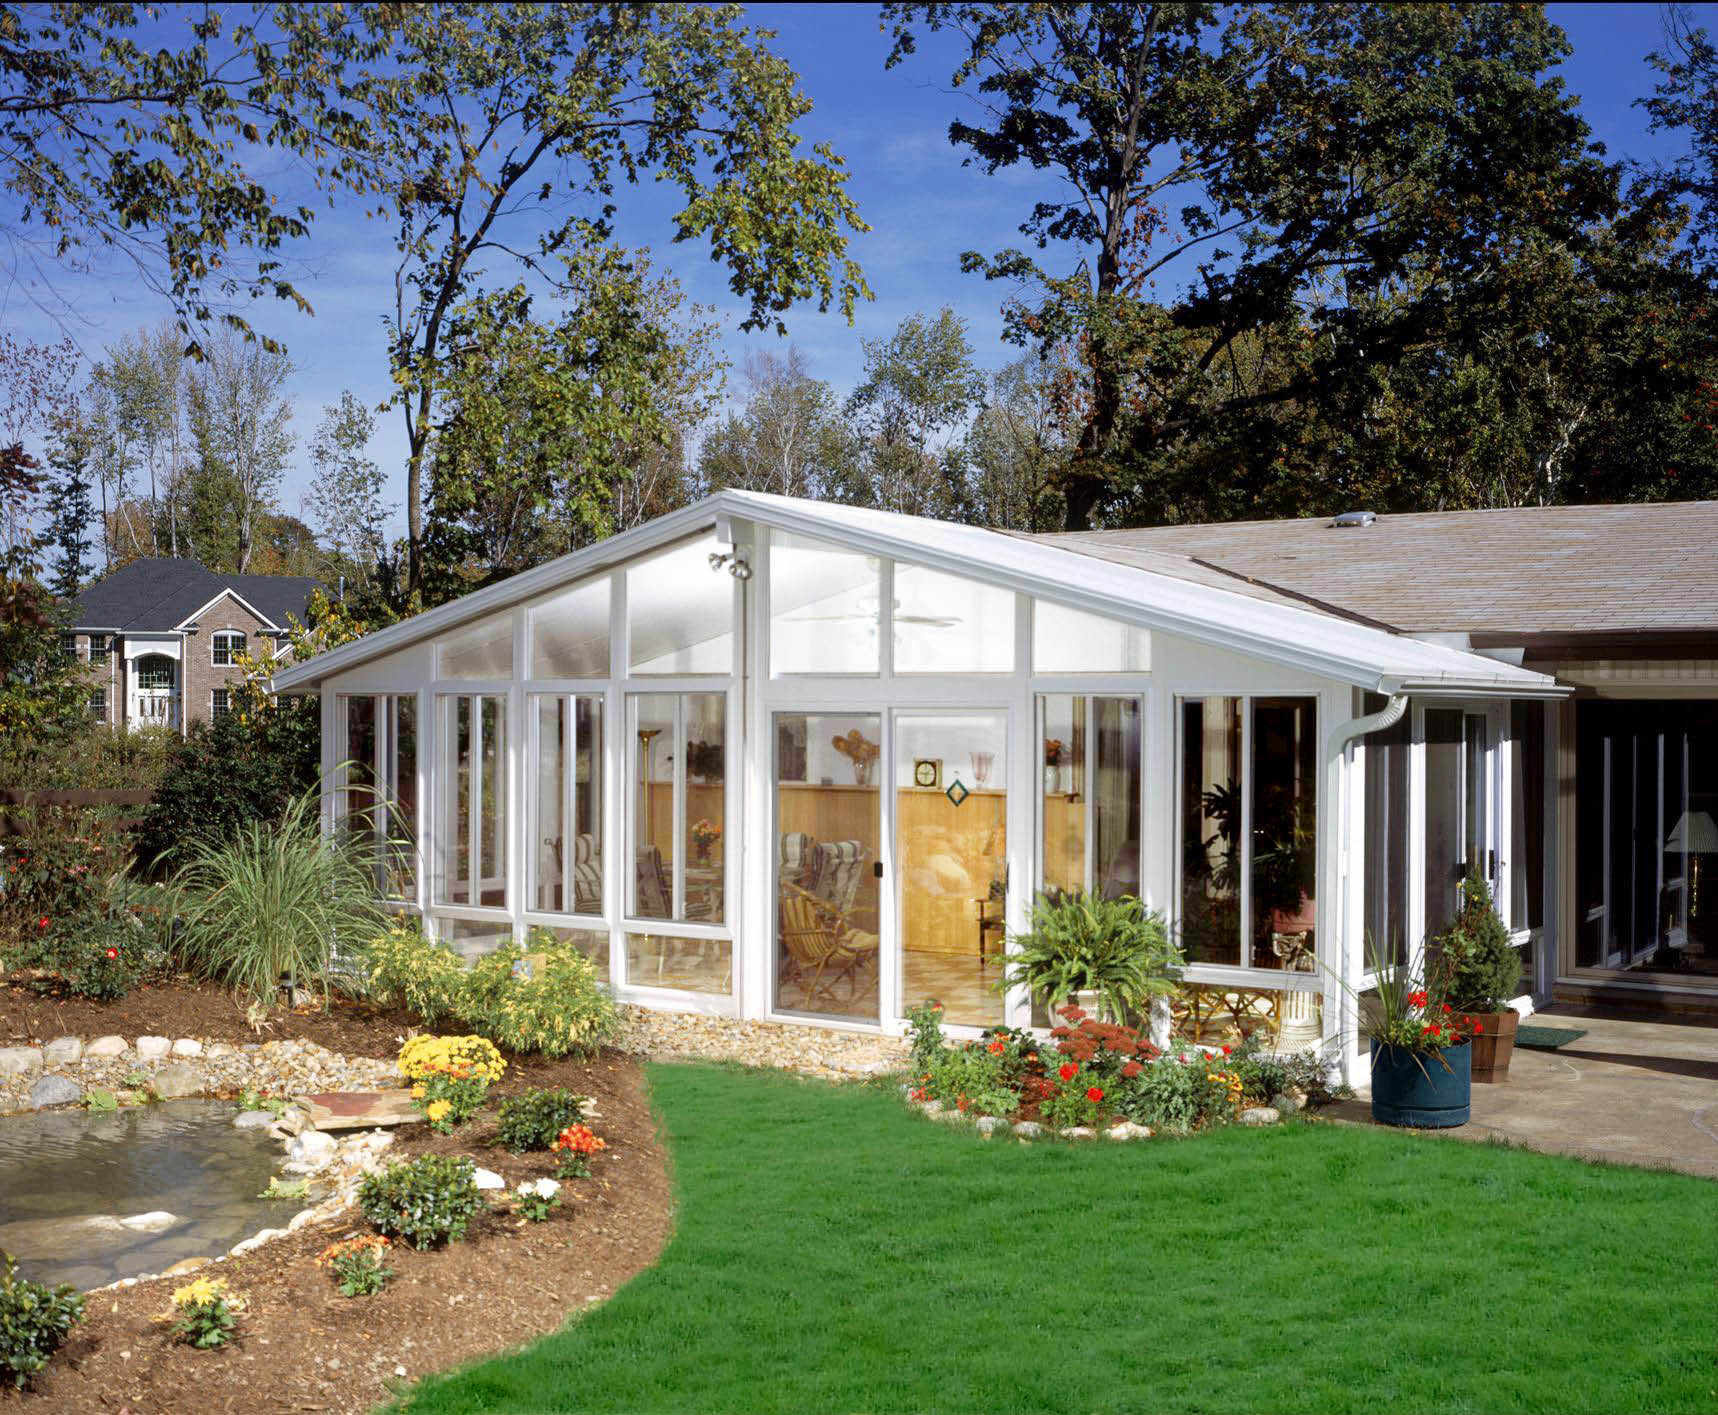 A sunroom with floor to ceiling glass windows can overlook your yard and garden